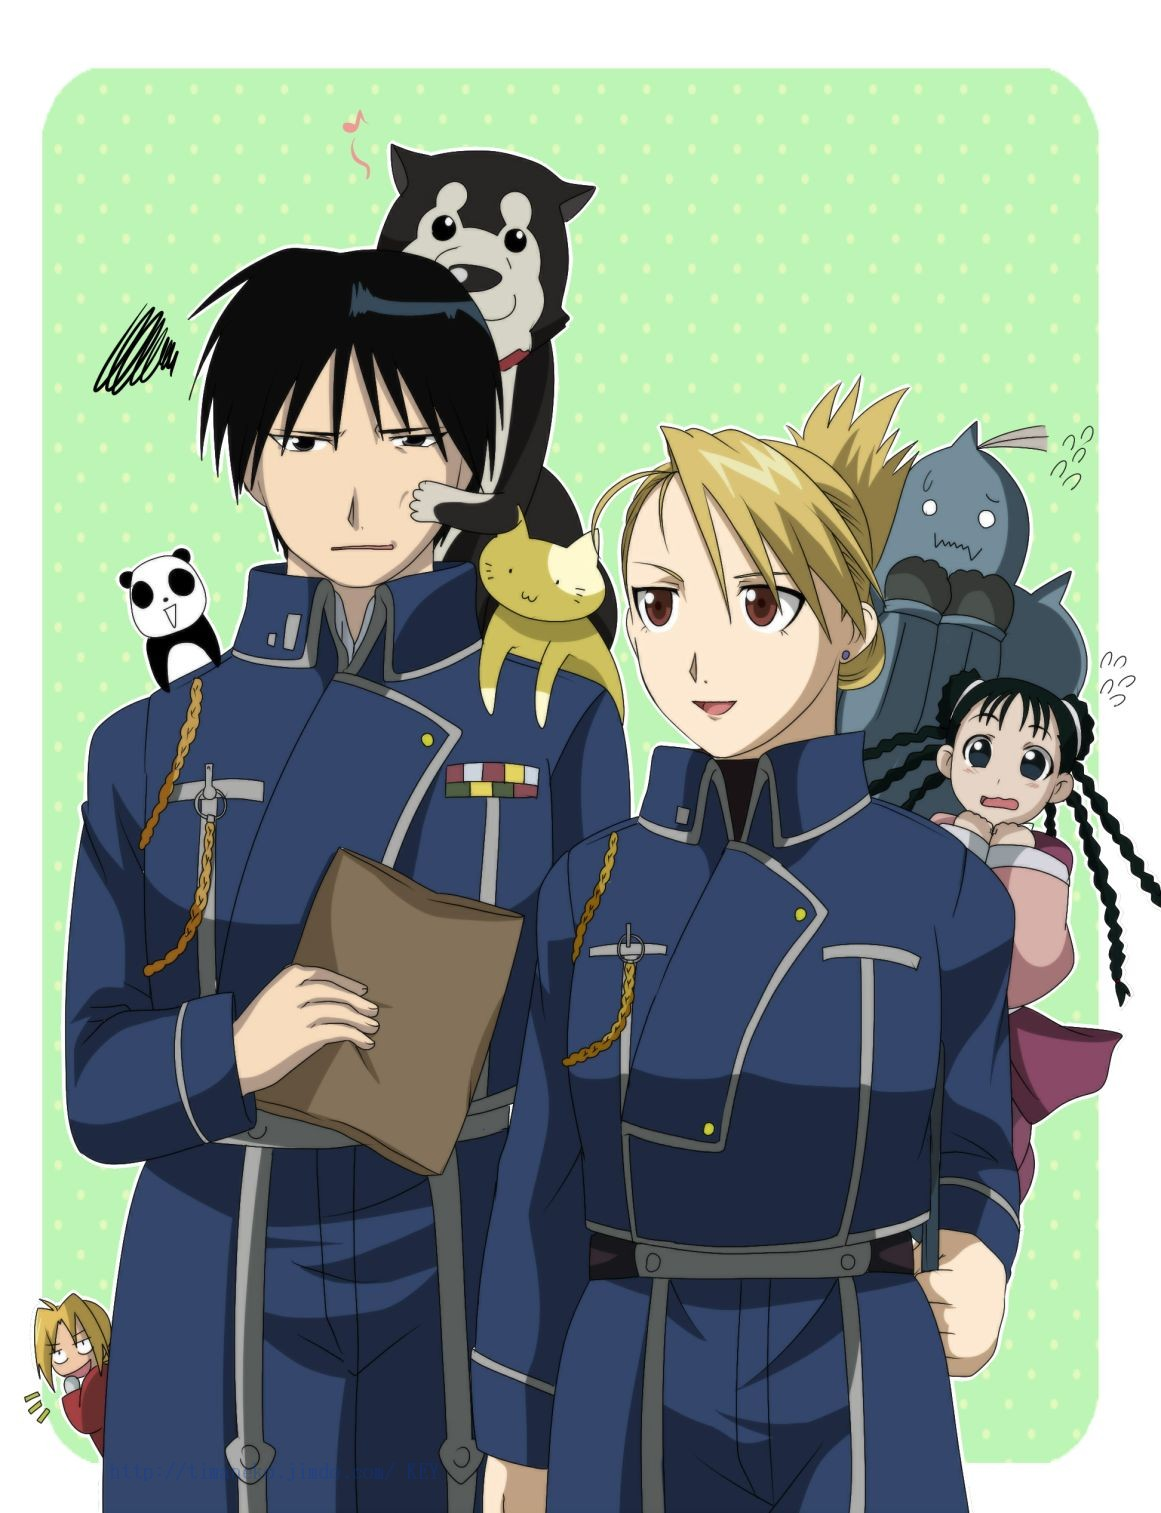 Alphonse Elric May Chang Alphonse And May Chang